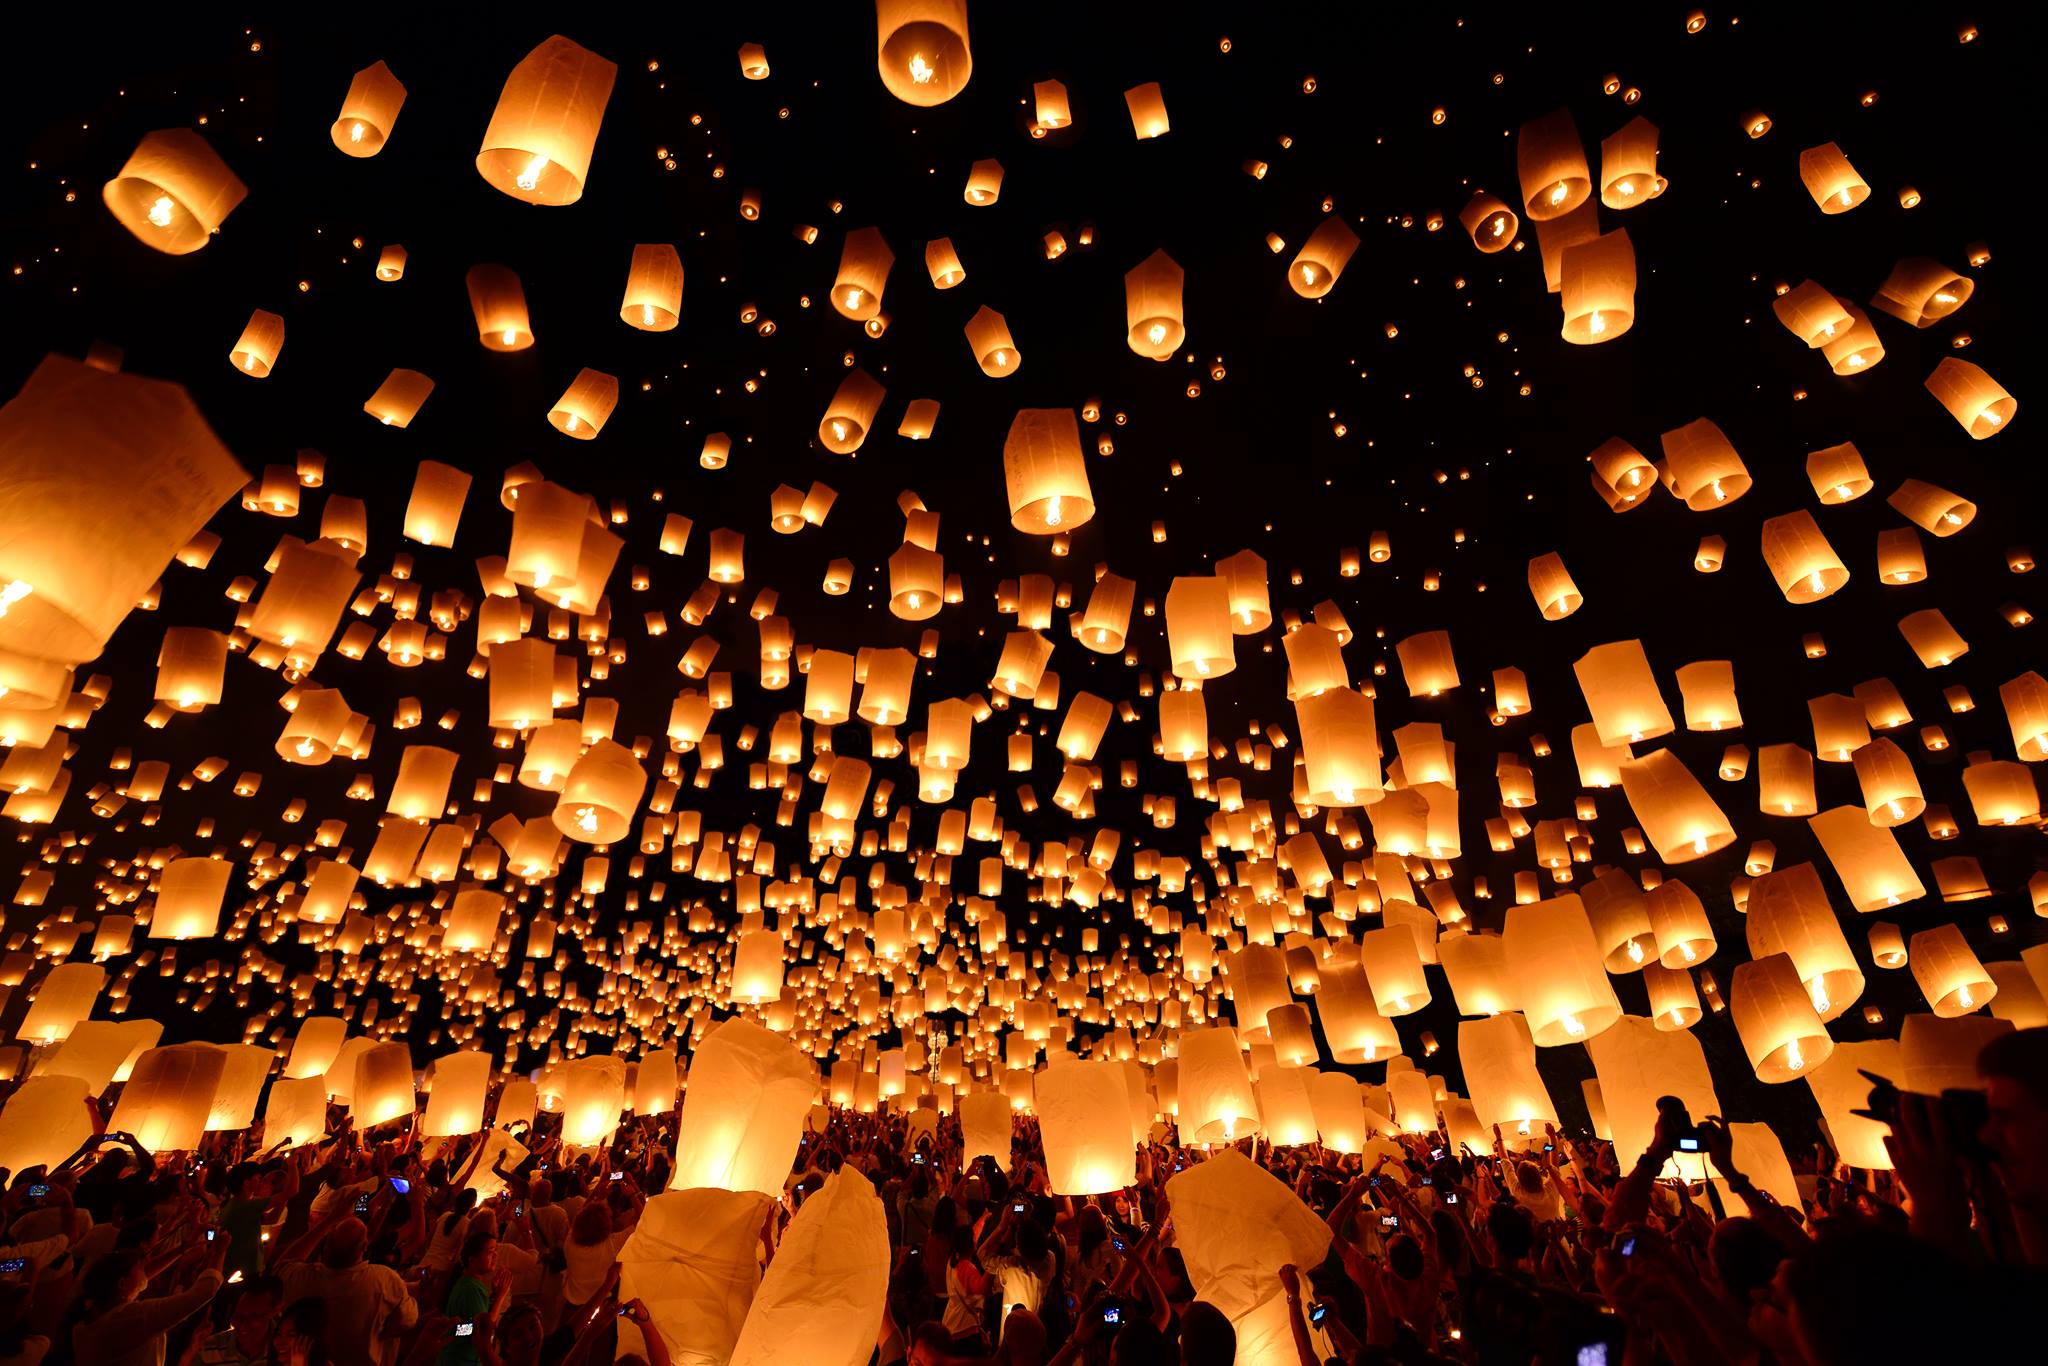 Wesak Wallpaper Hd Unique Fall Festivals In Nevada You Won T Find Anywhere Else